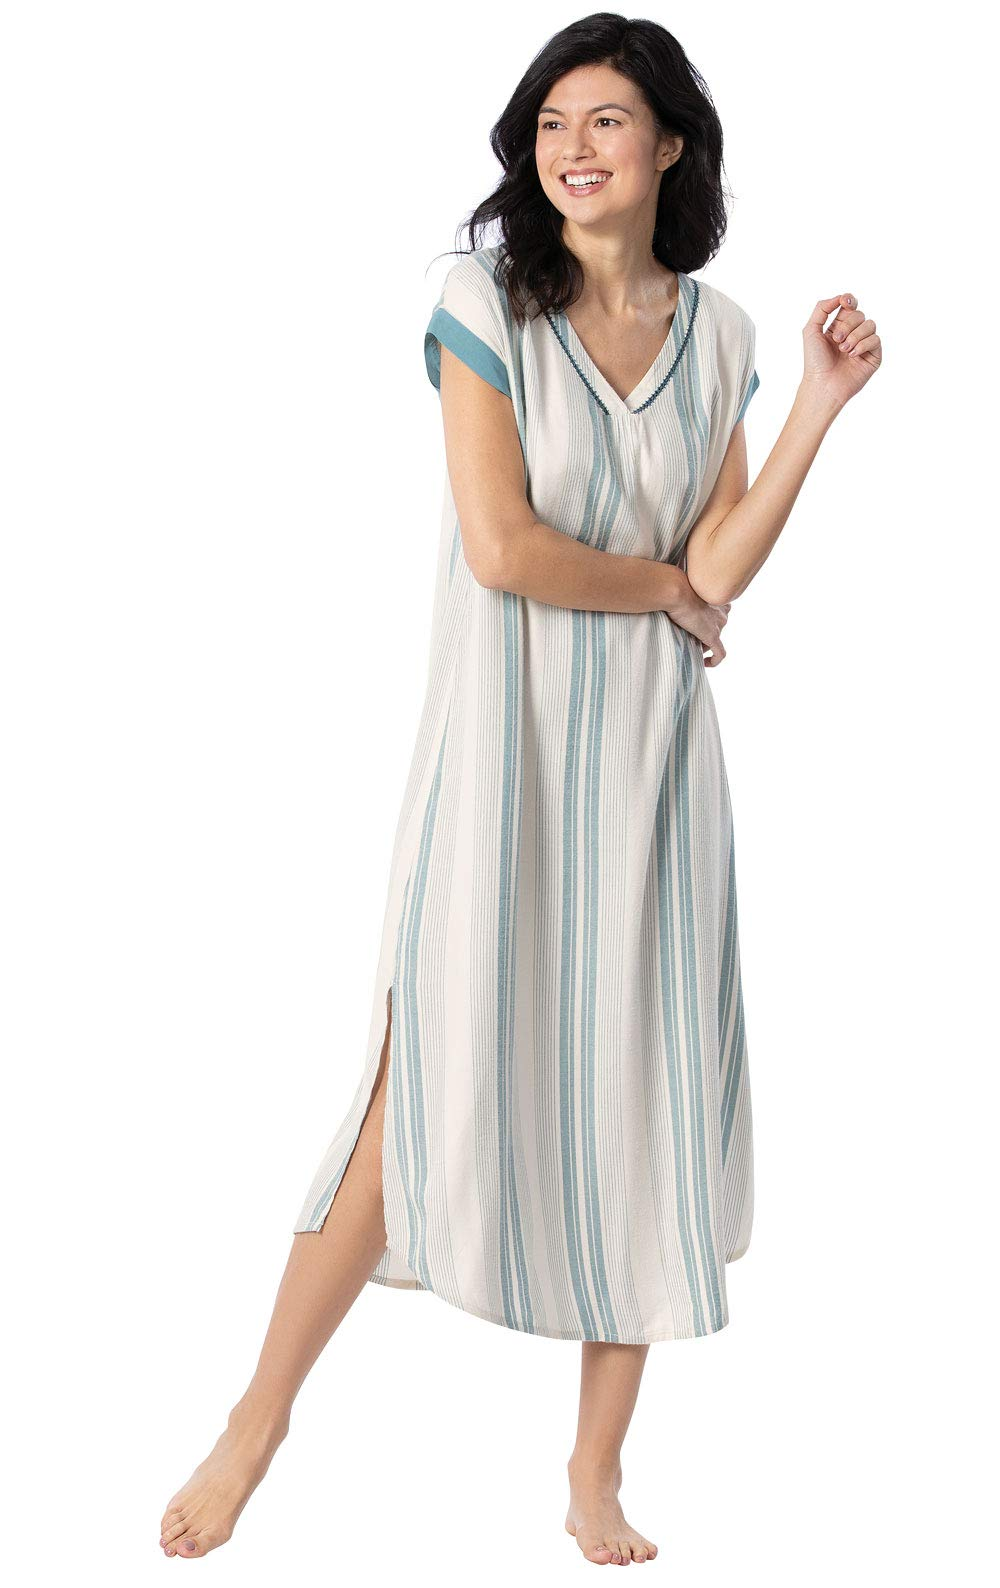 Margaritaville Womens Nightgowns by PajamaGram - Blue and White Stripe, M, 8-10 by PajamaGram